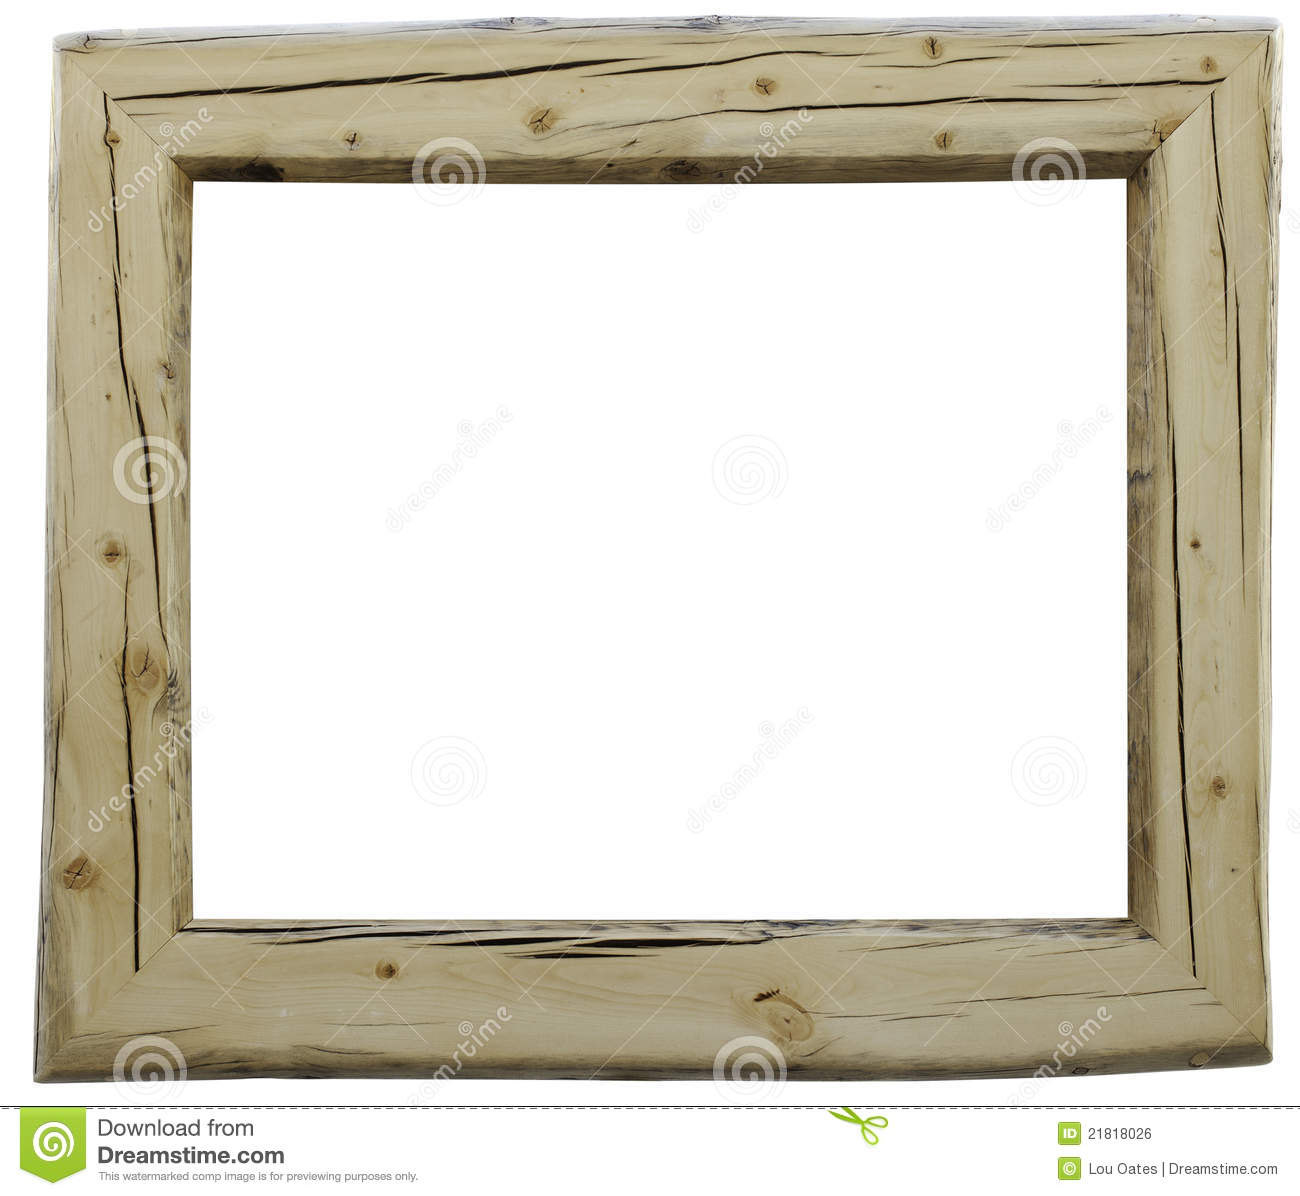 Rustic Hand Made Wood Frame With Slightly Irregular Outer Edges.